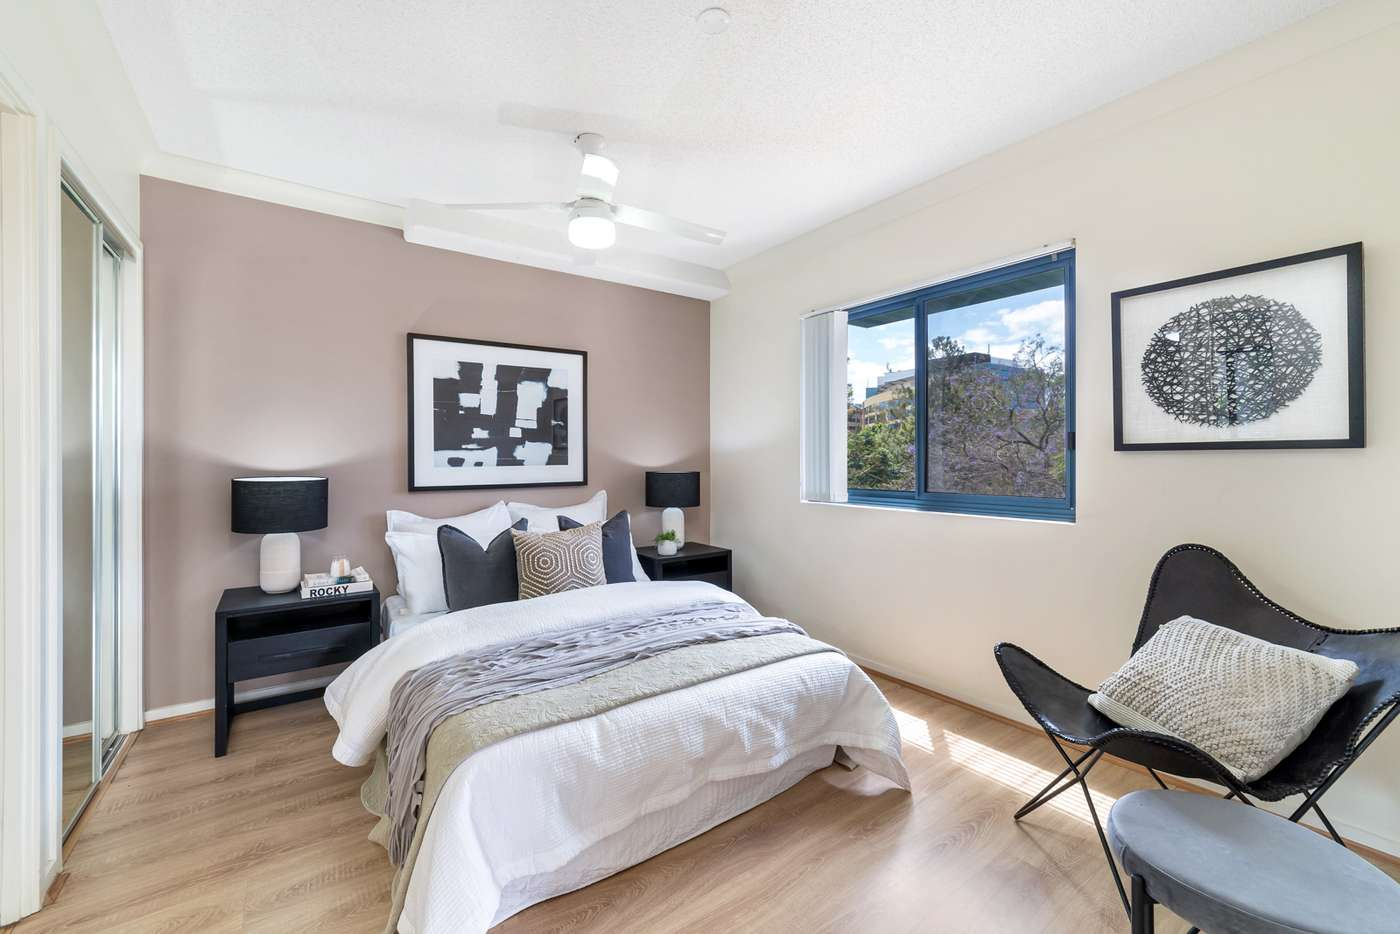 Fifth view of Homely unit listing, 404/21 Patrick Lane, Toowong QLD 4066